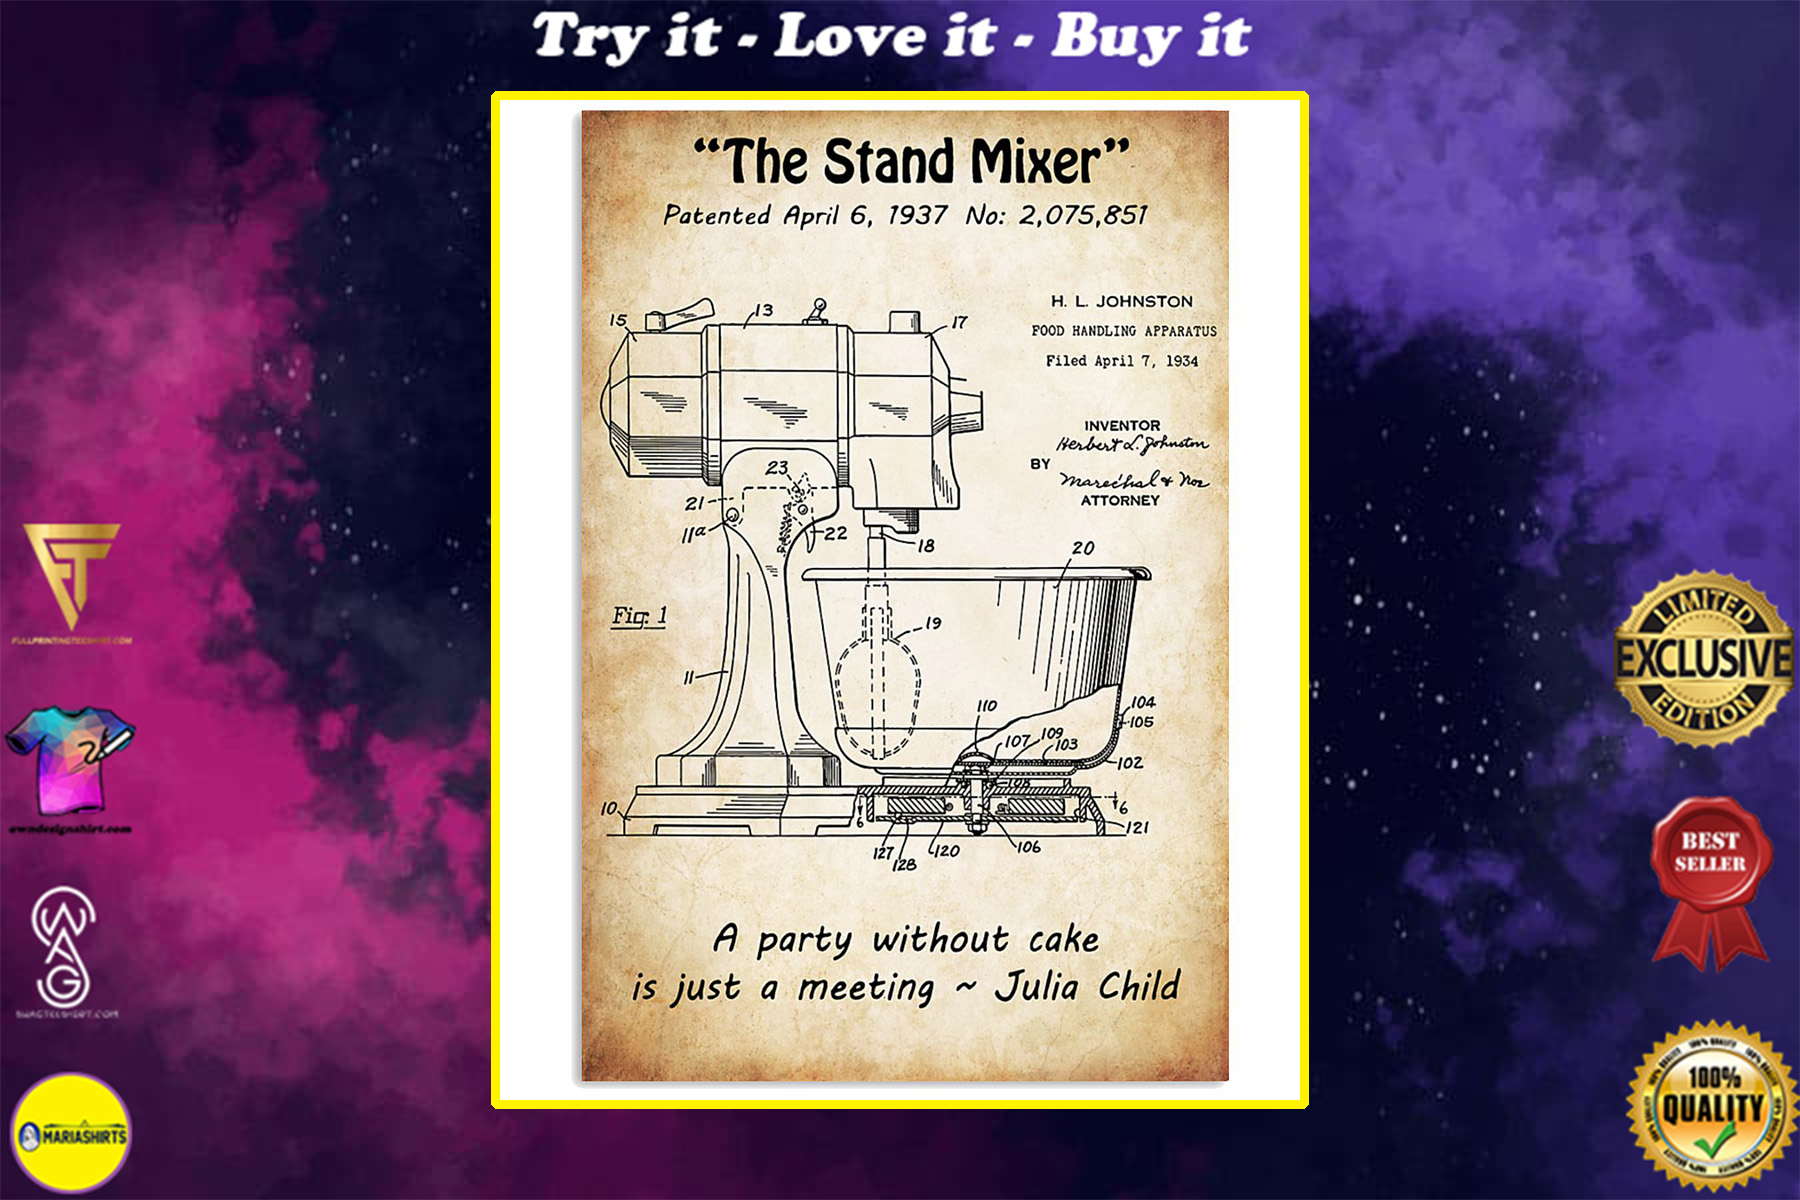 baking the stand mixer vintage poster